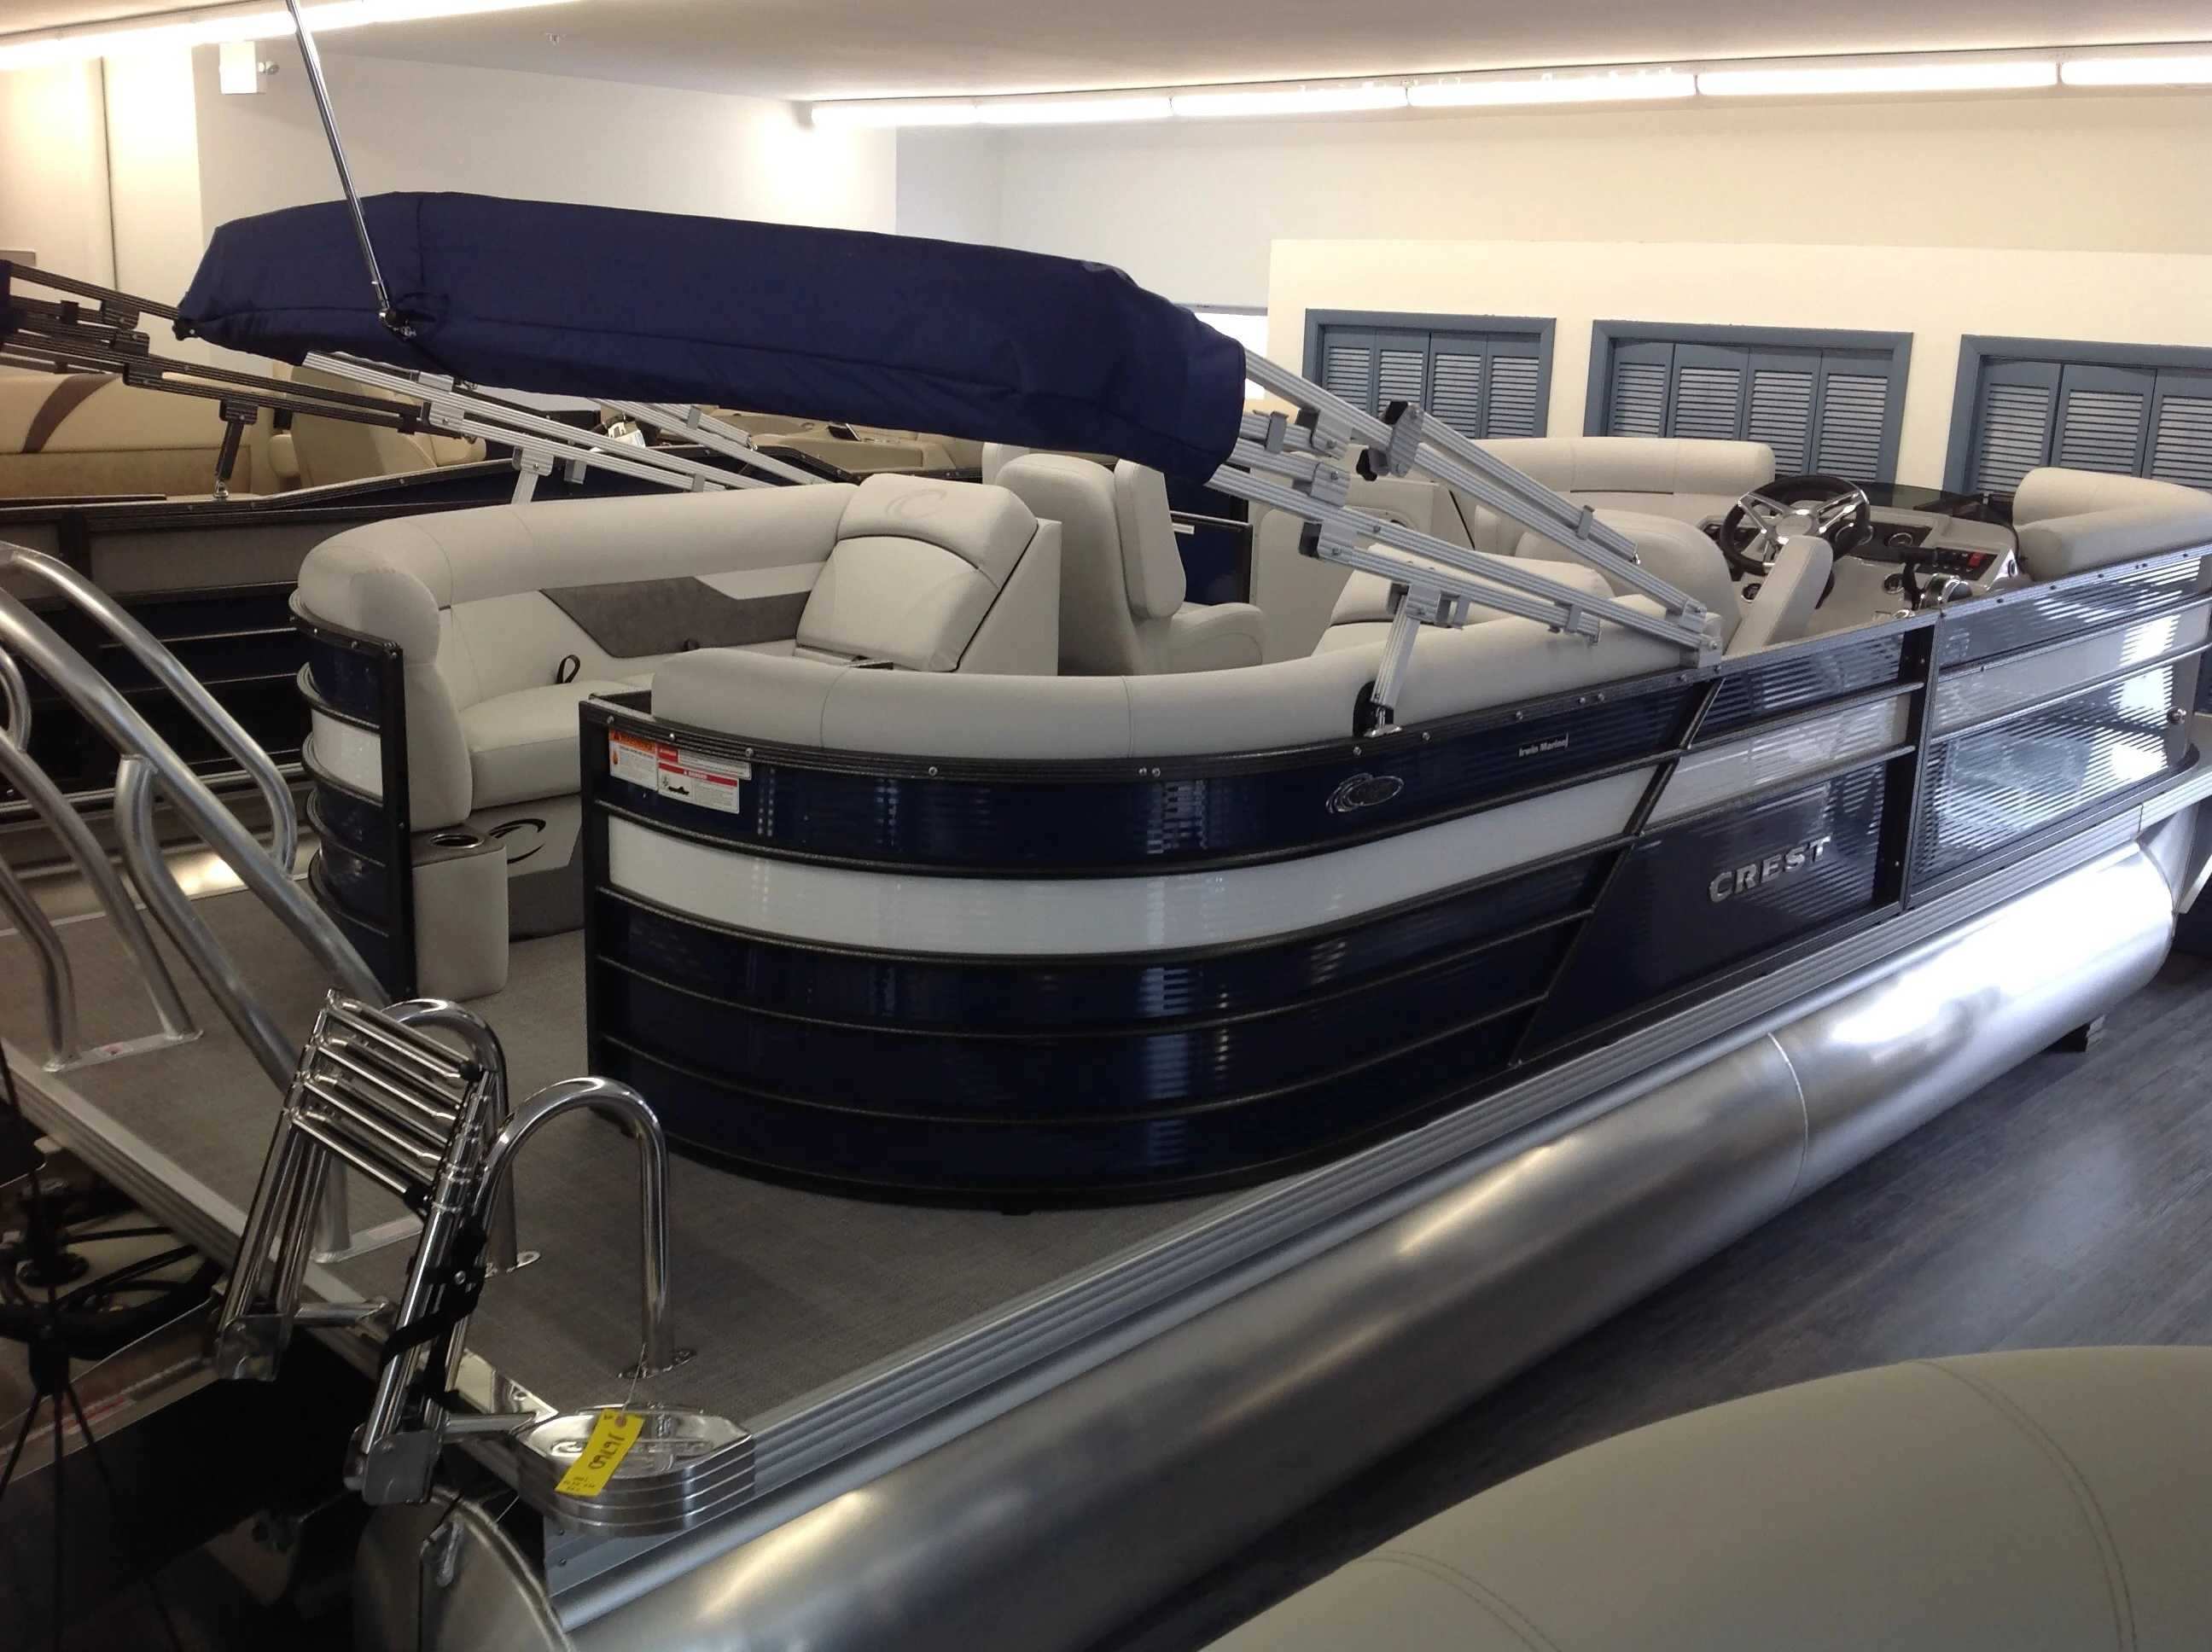 2021 Crest boat for sale, model of the boat is Cl Lx 220slc & Image # 12 of 13